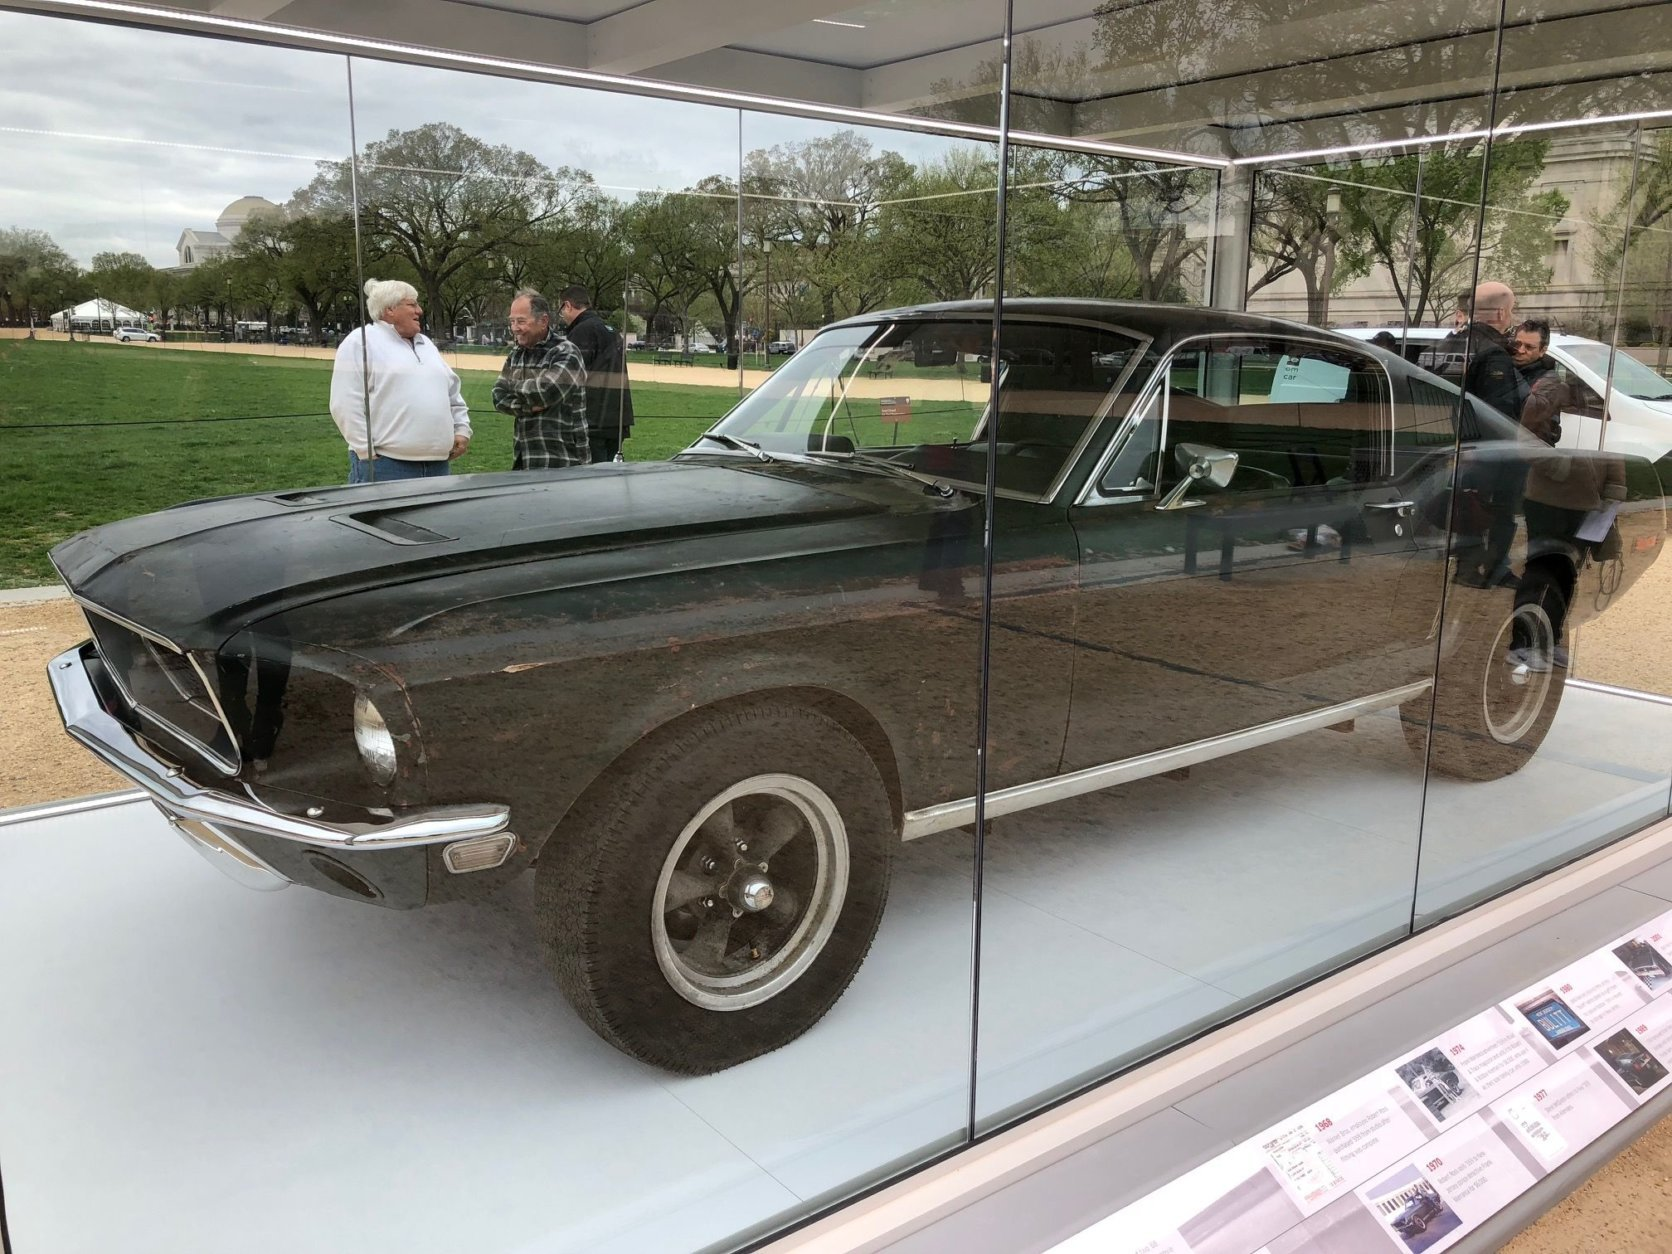 Two identical 1968 Mustang GT fastbacks were used in the movie, but after filming, the cars went their separate ways. (WTOP/John Aaron)